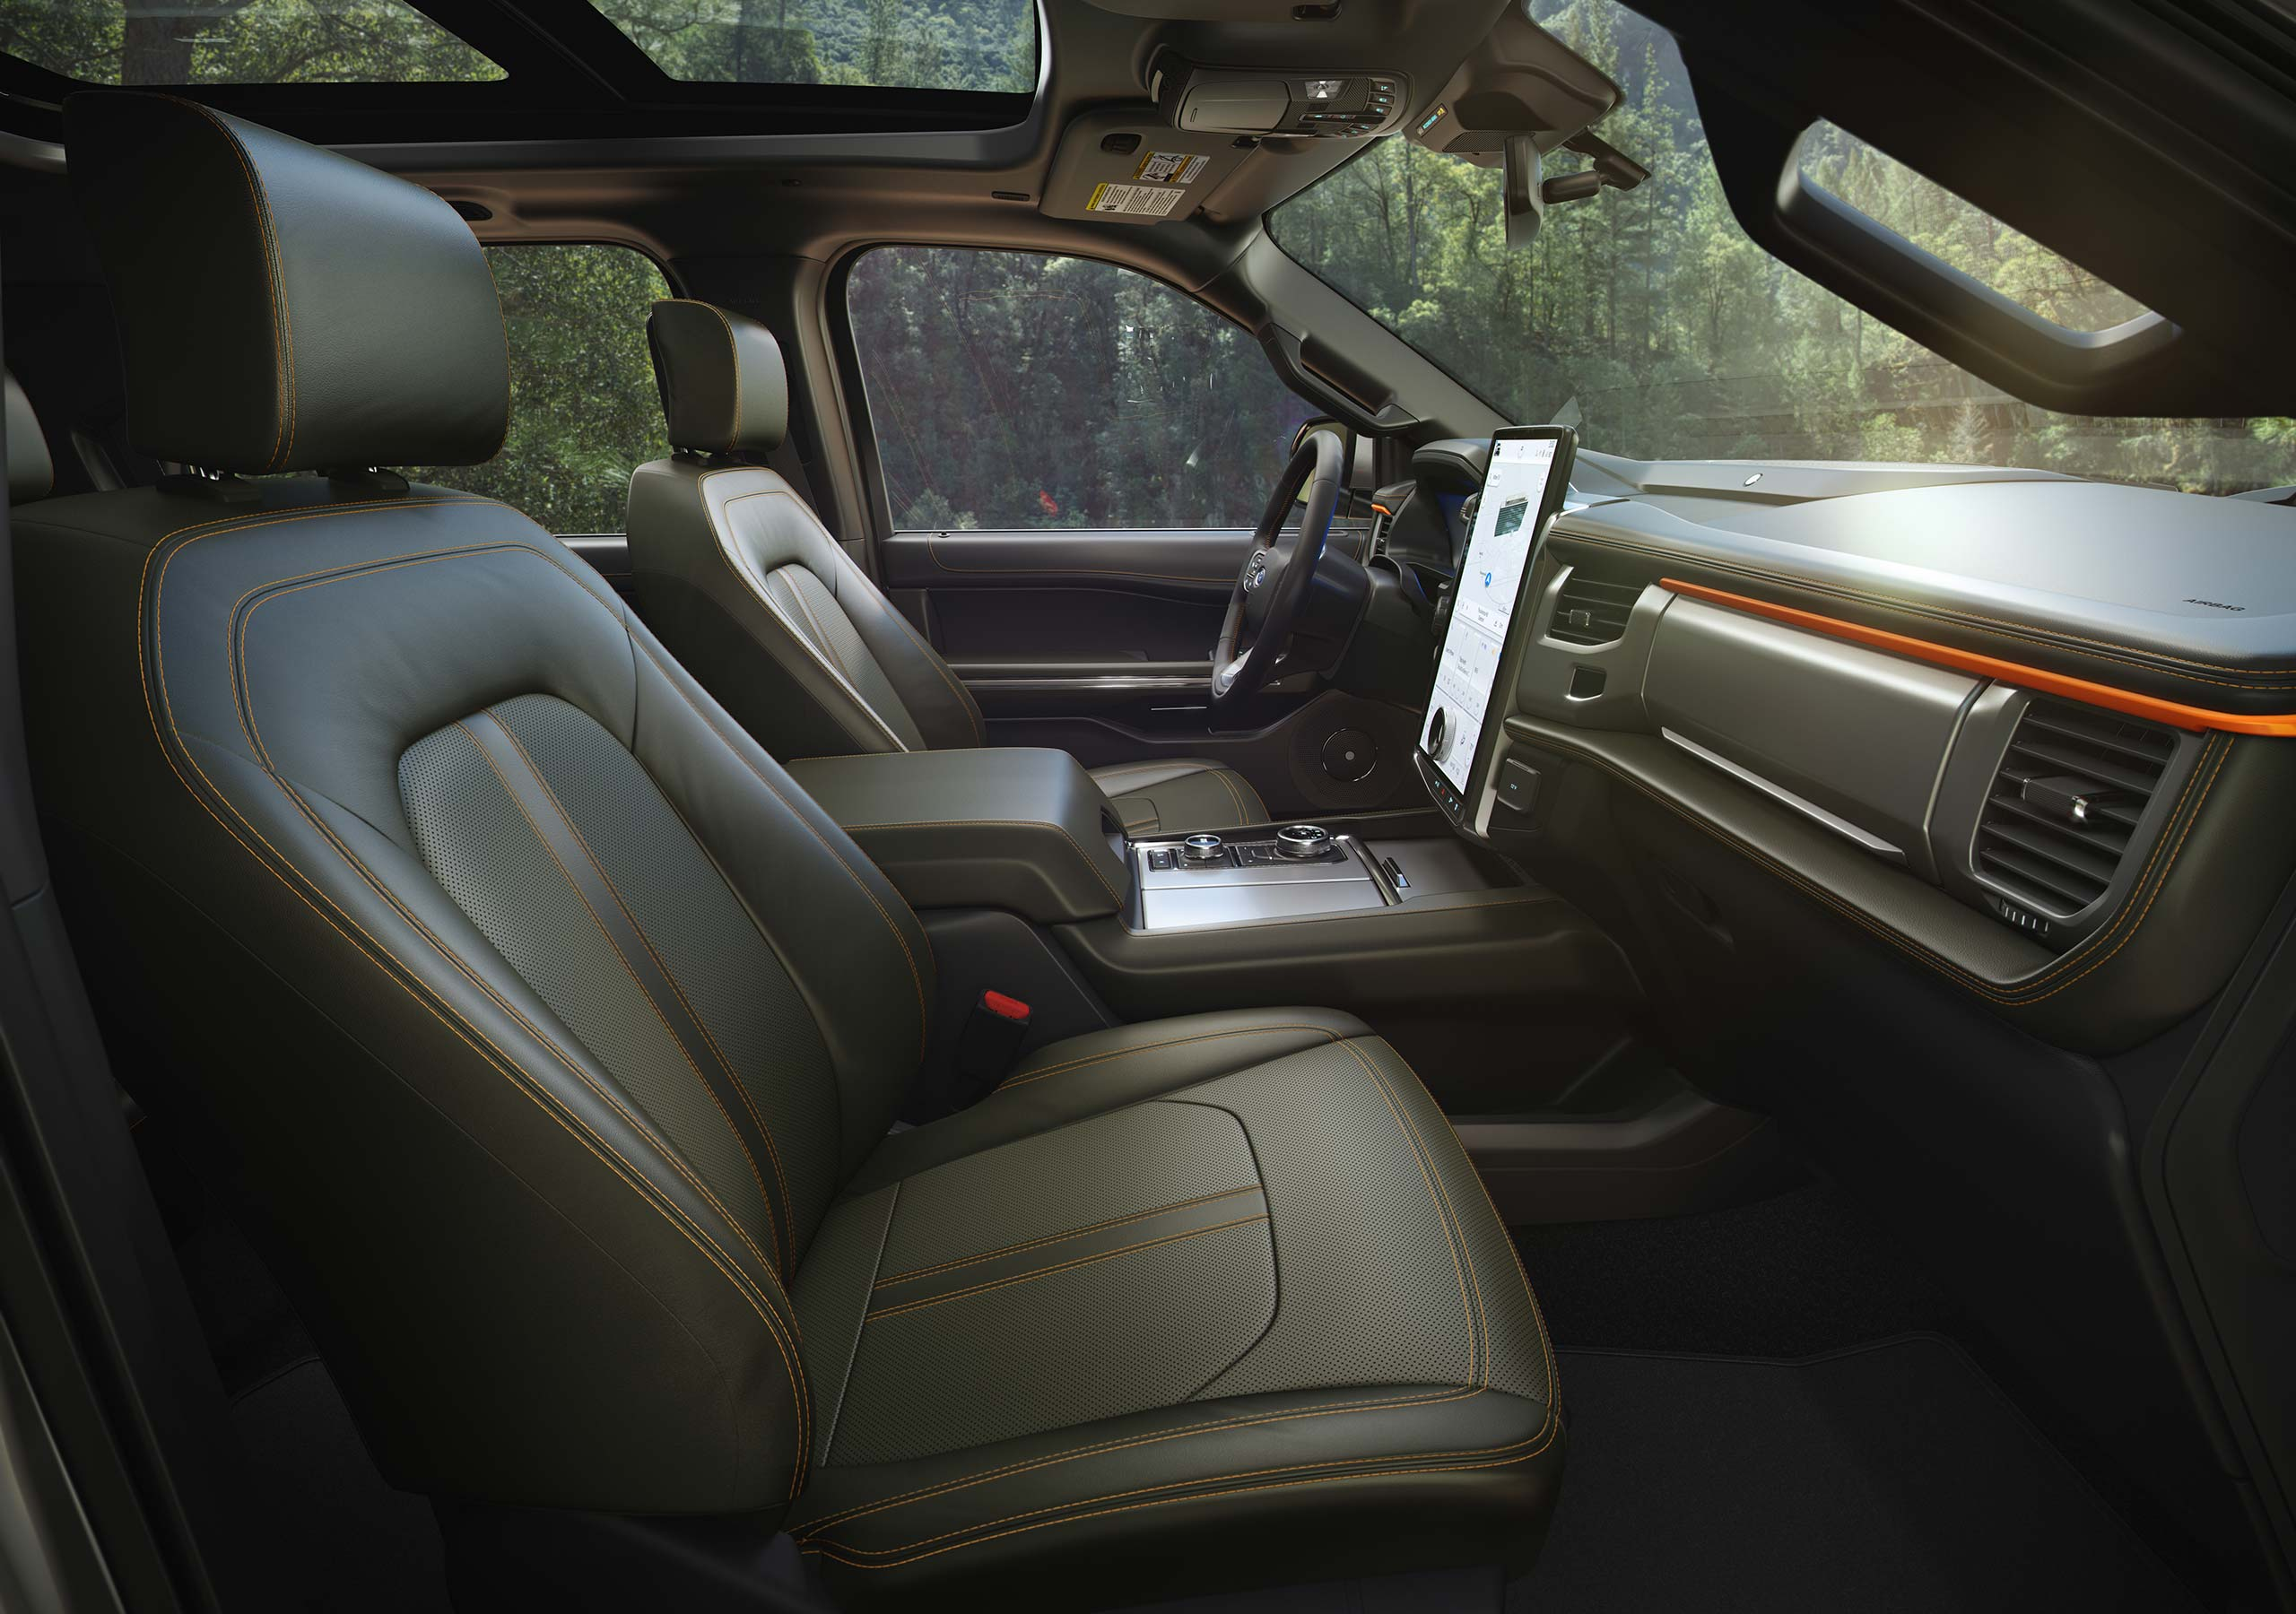 2022 Ford Expedition Timberline interior side view